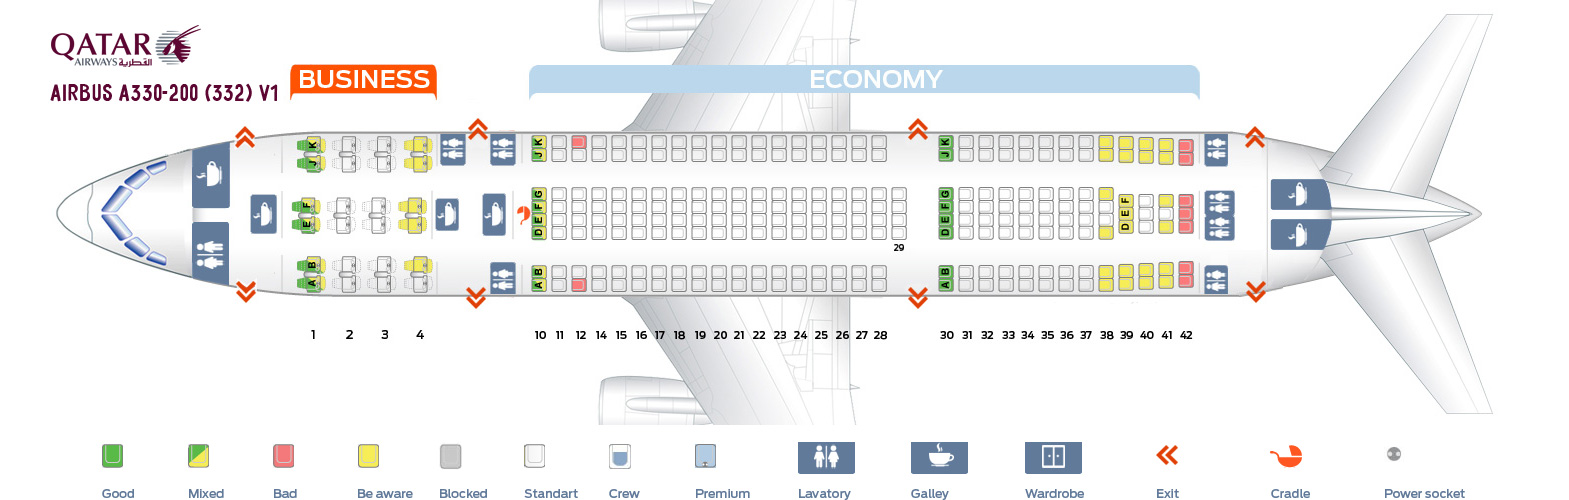 Seat Map Airbus A330-200 V1 Qatar Airways